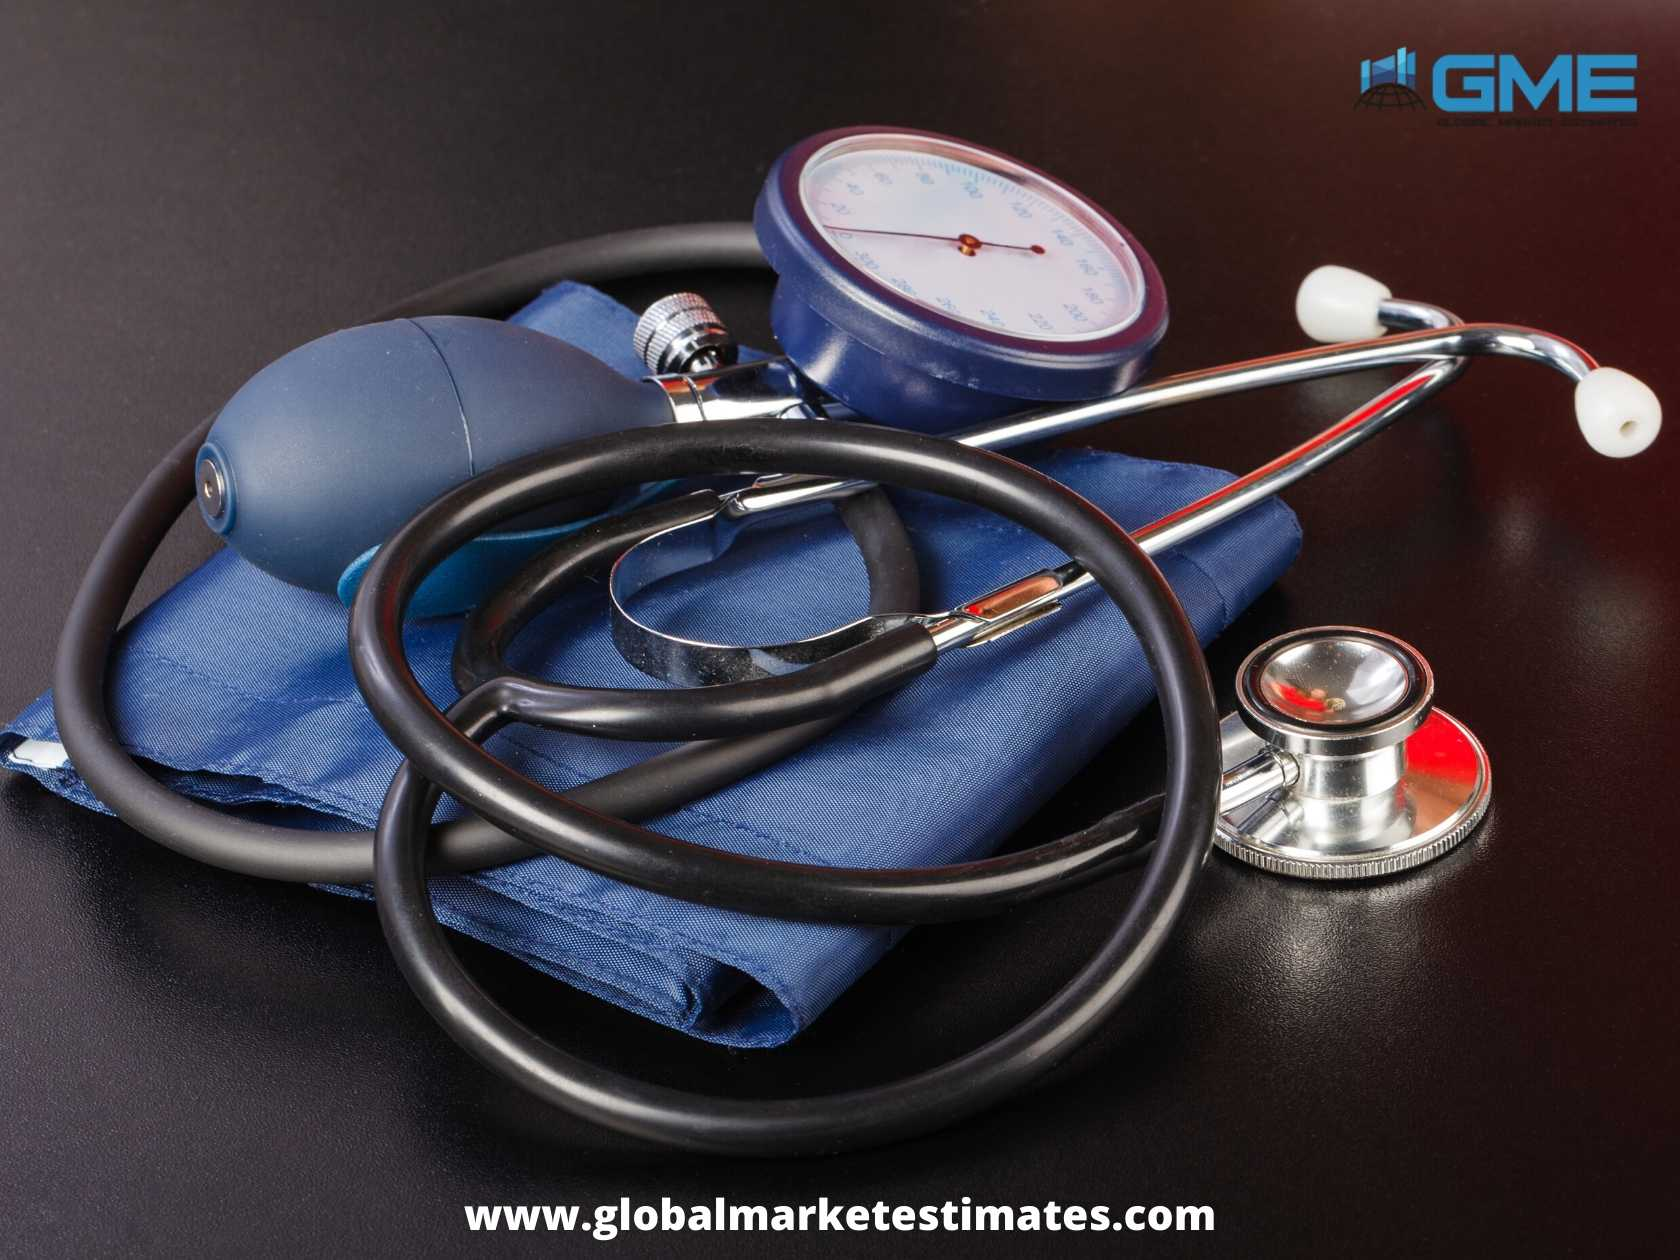 Global Intra-Abdominal Pressure Measurement Devices Market